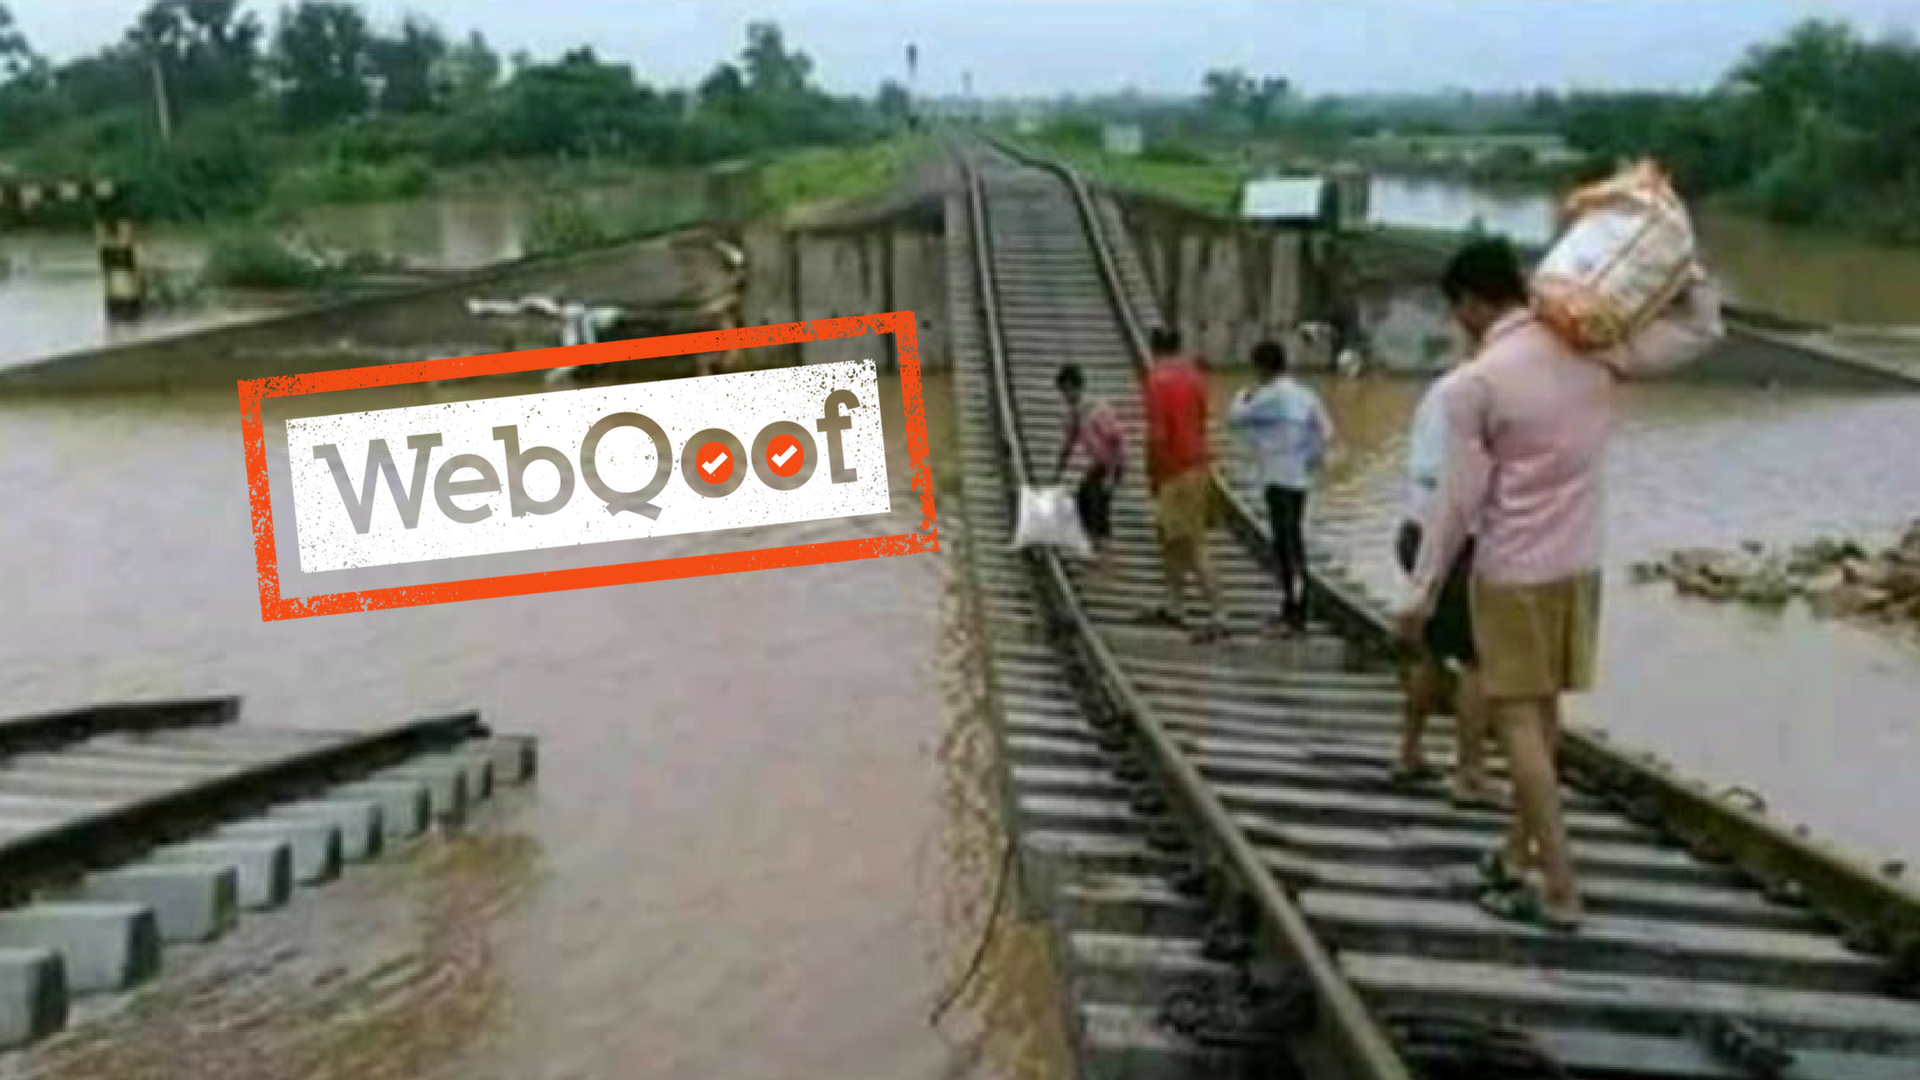 The Viral Photos Of Rss Workers Helping In Kerala Floods Not Real